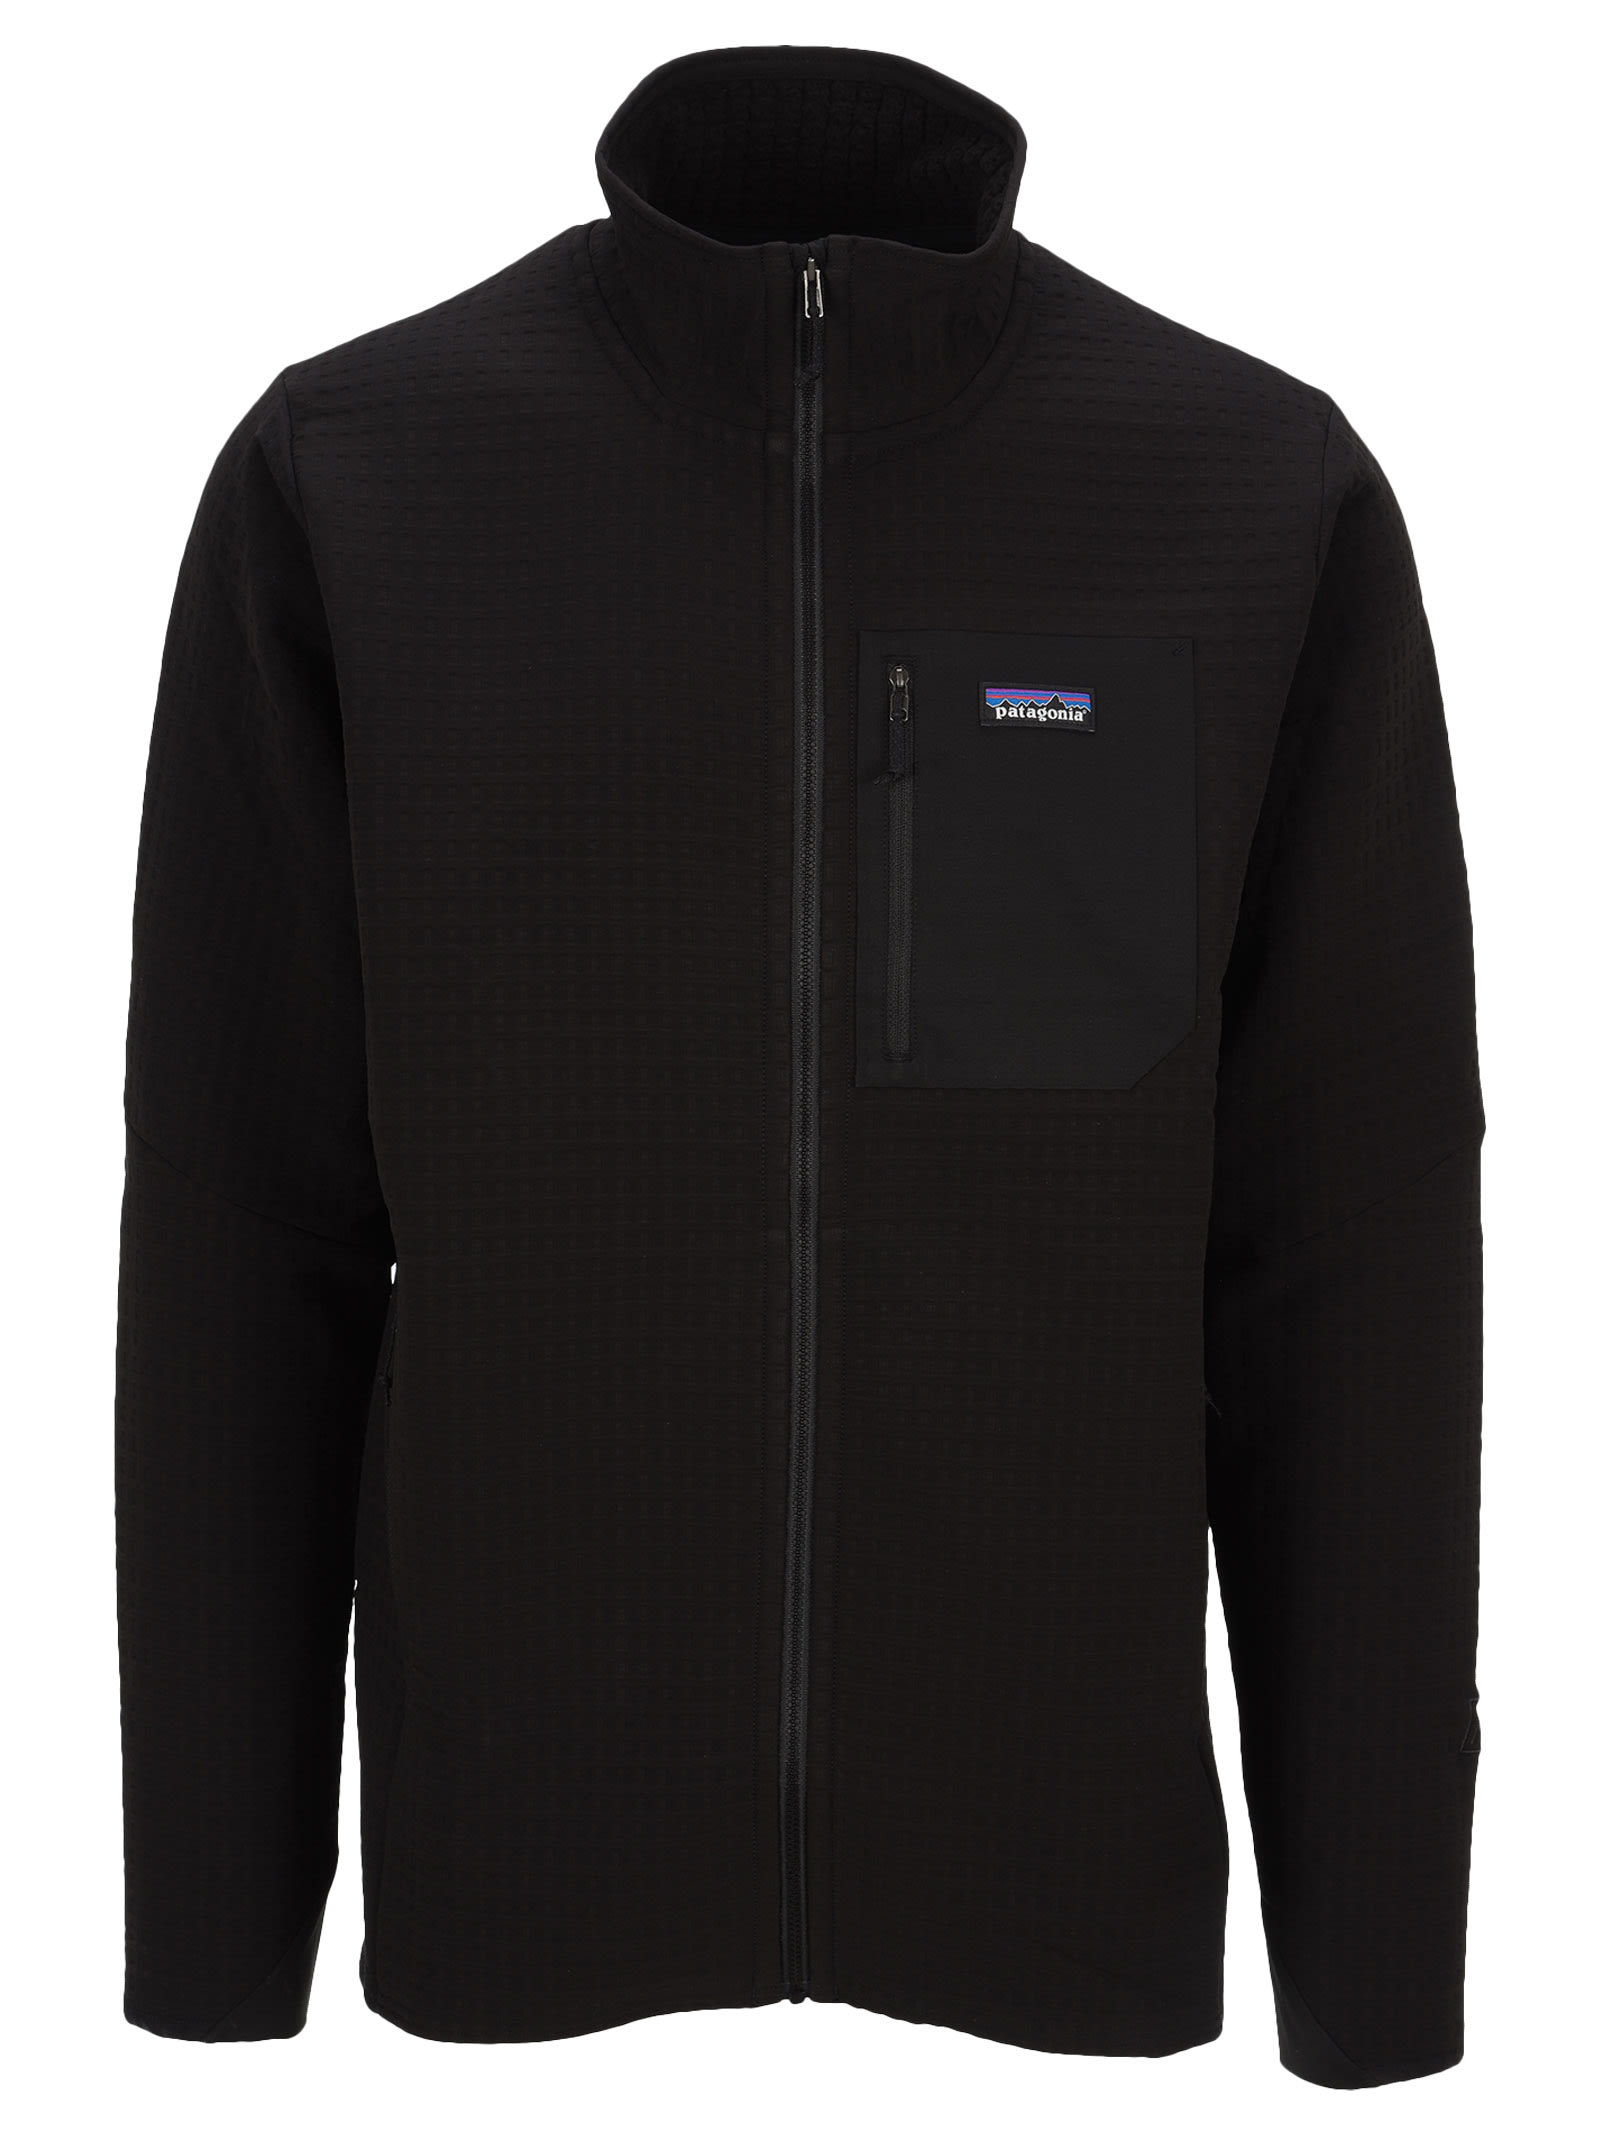 Techface Jacket By Patagonia. Featuring: - High Standing Collar; - Front Zip Fastening; - Chest Zip Pocket With Logo Patch; - Side Zip Pockets; - Long Sleeves; - Straight Hem. Composition: 77% RECYCLED POLYESTER, 17% POLYESTER, 6% ELASTANE